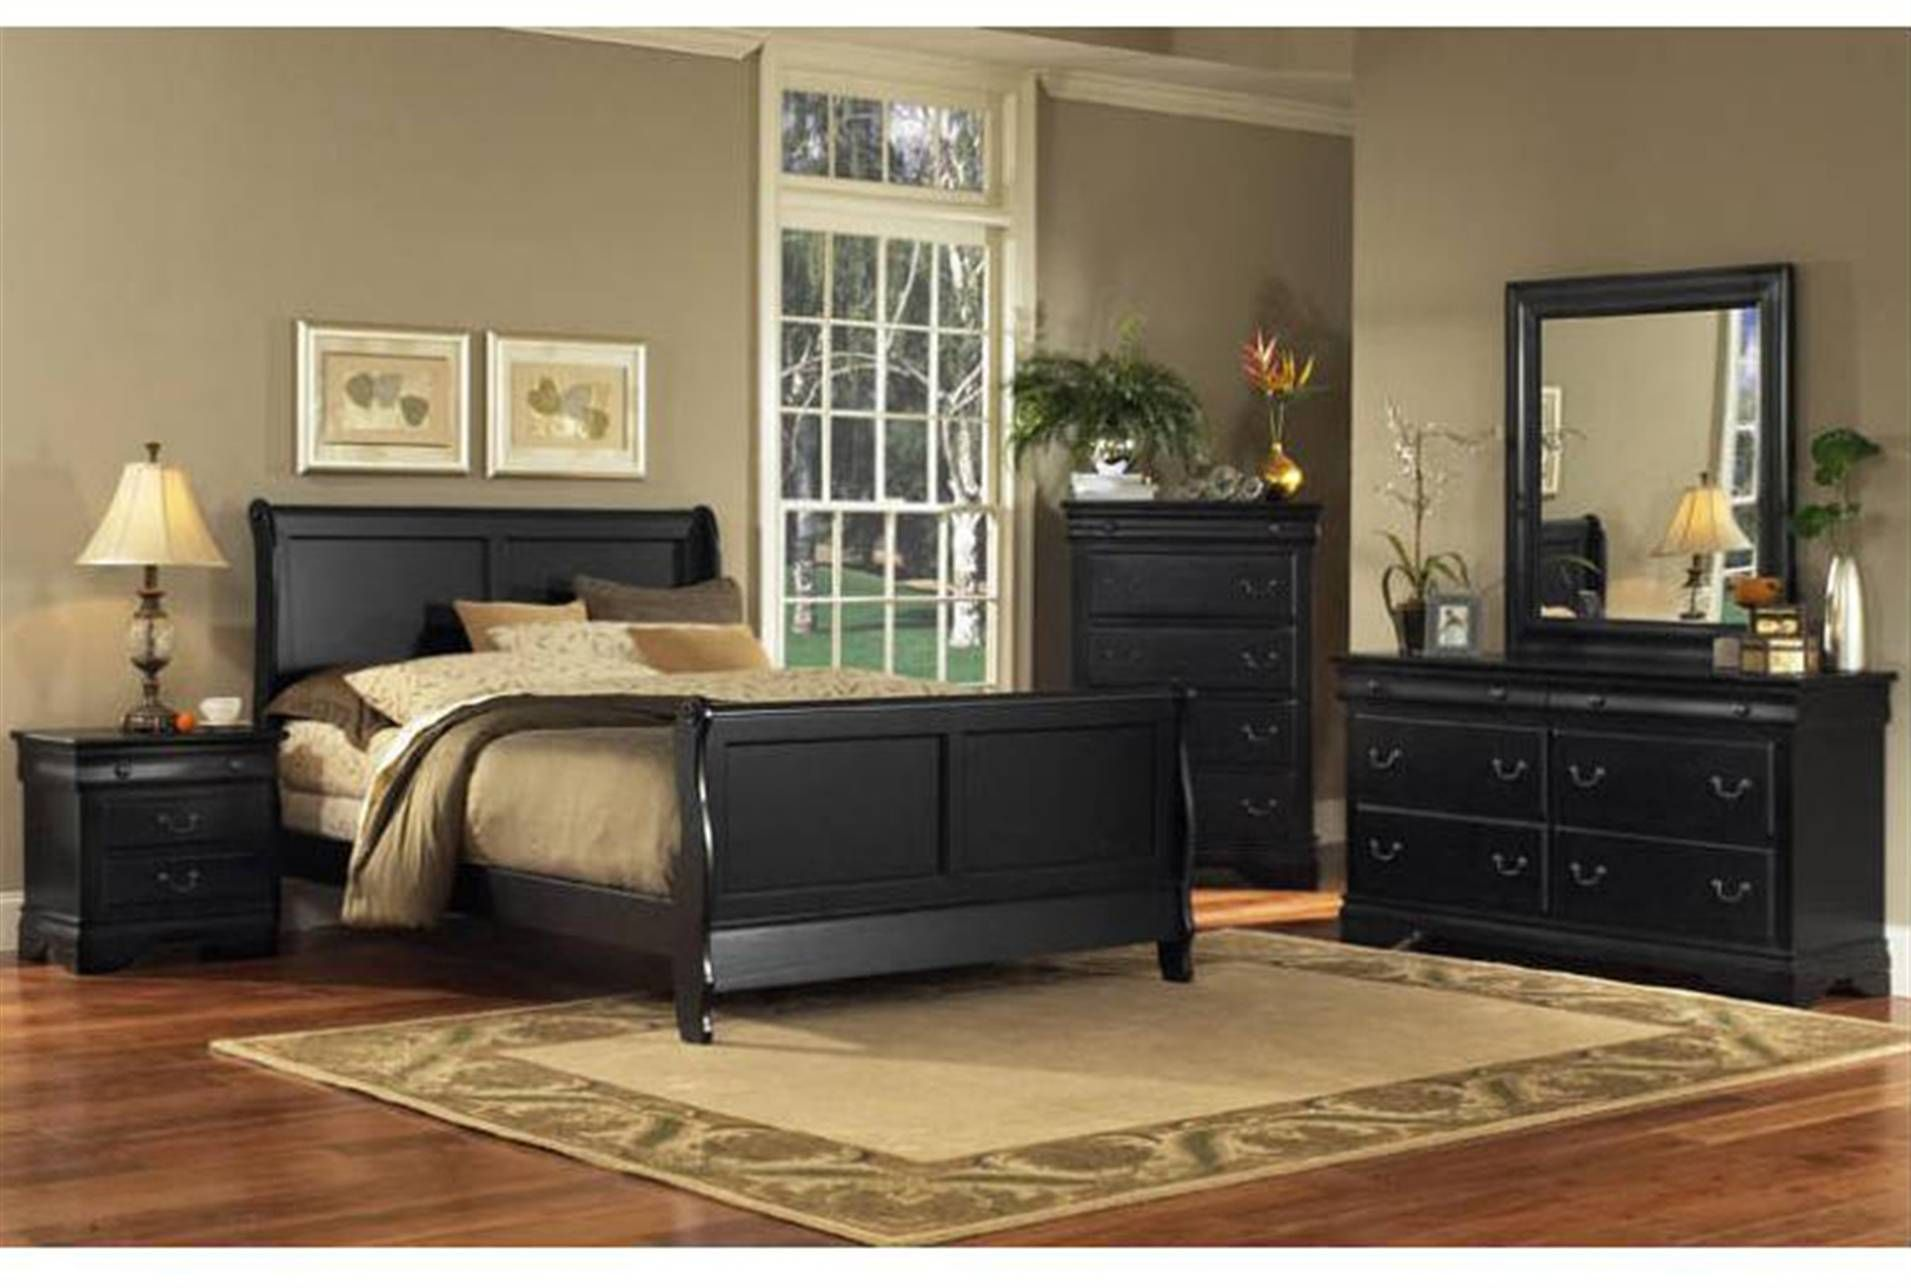 Very Nice Bedroom Set, That I Would